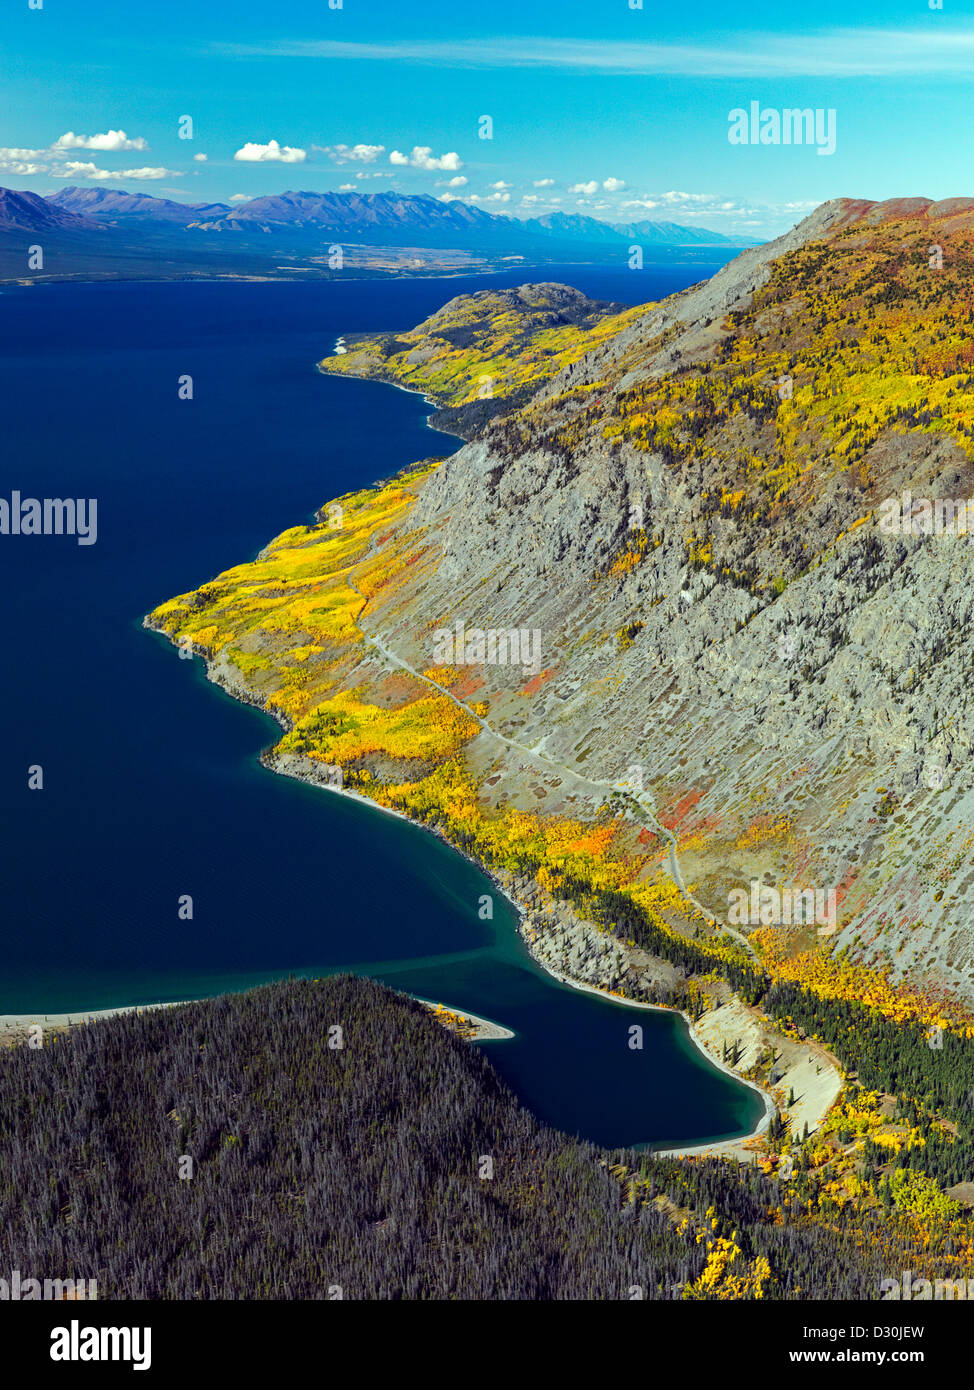 An aerial photo during fall colors of the Kluane Lake in the Yukon Territory of Canada - Stock Image